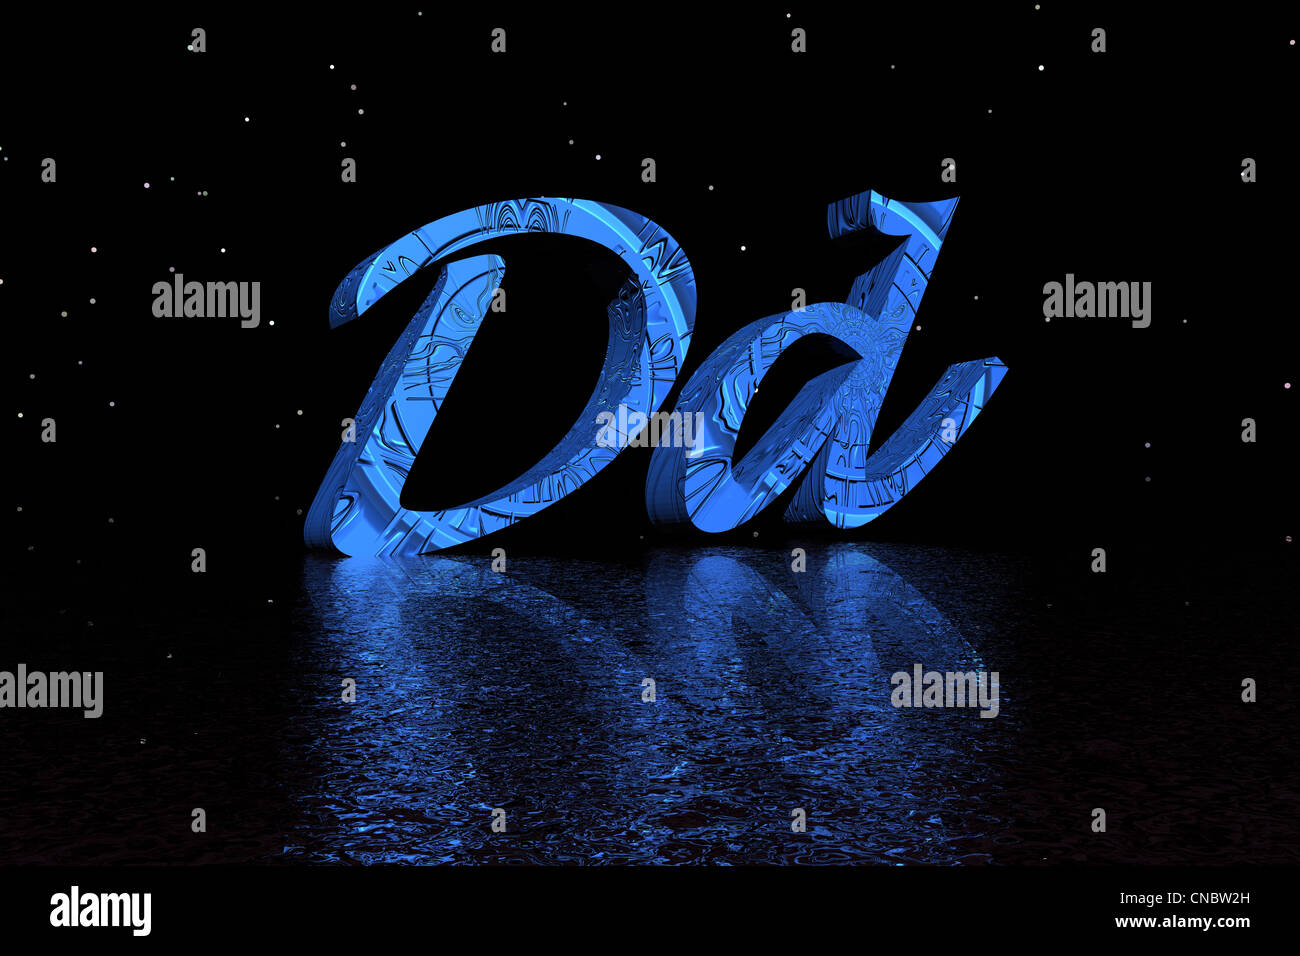 letter d blue and black - Stock Image